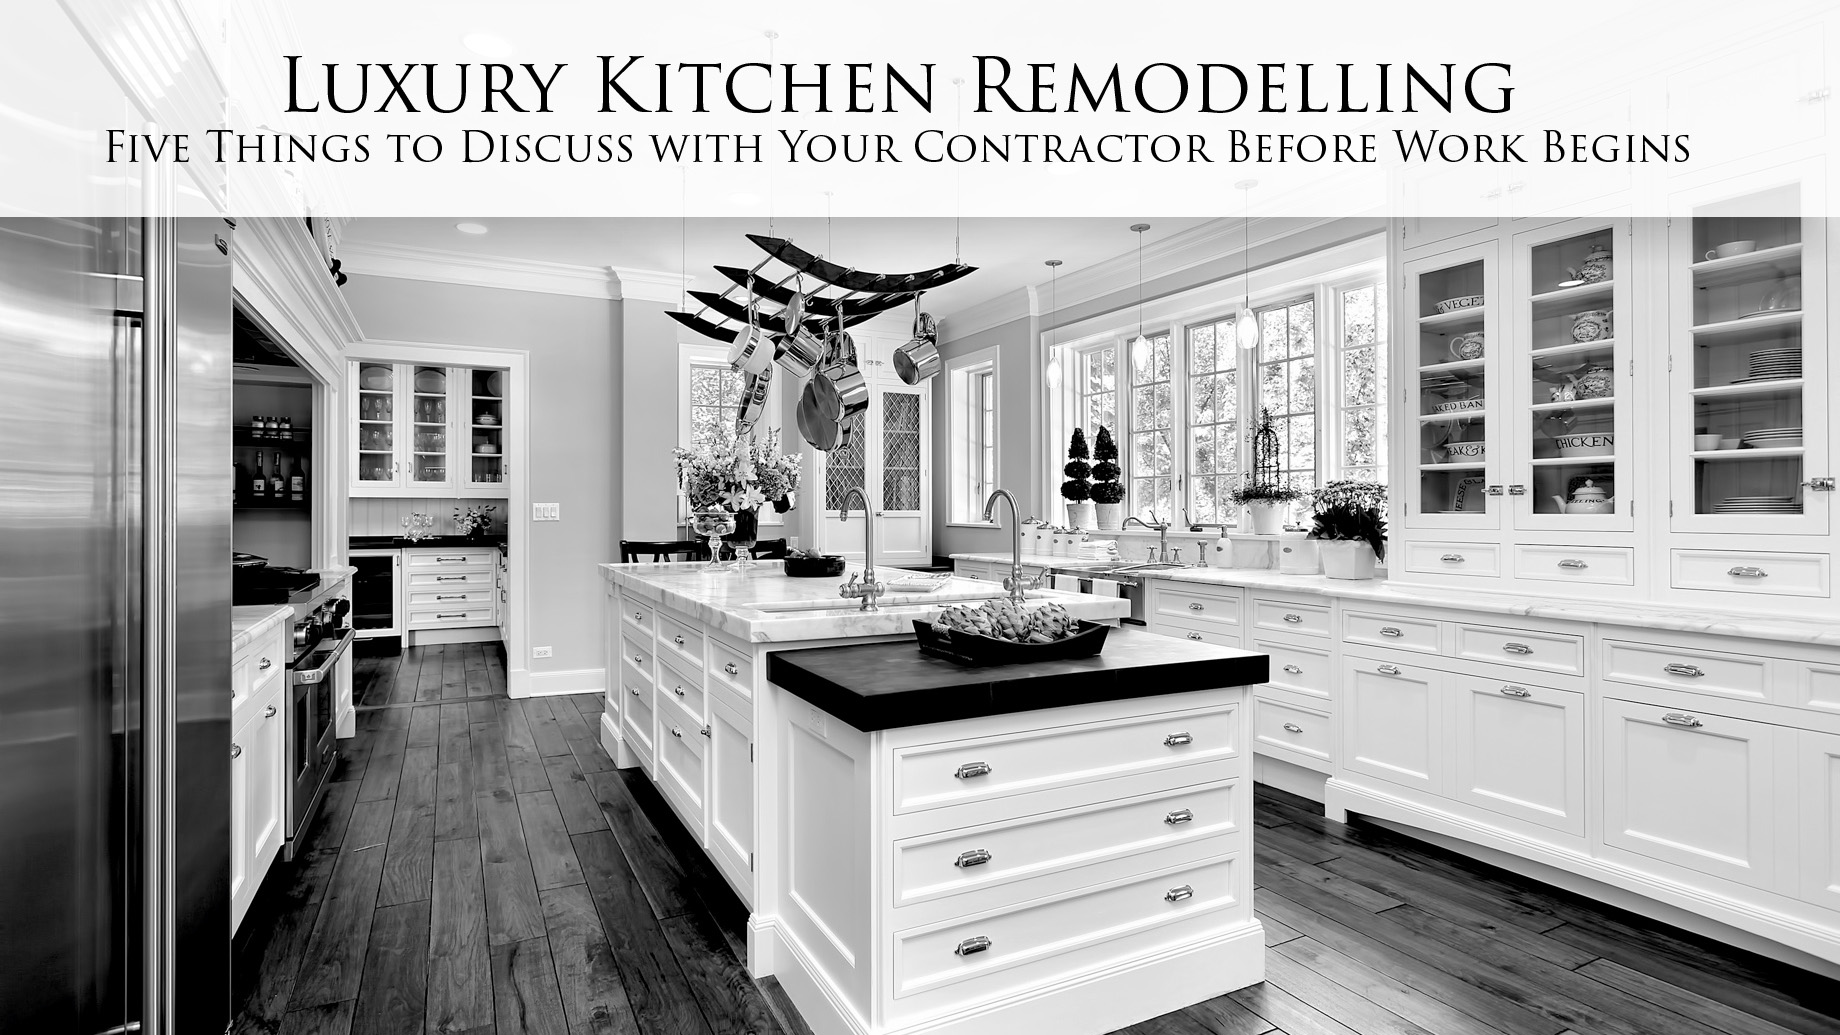 Luxury Kitchen Remodelling - Five Things to Discuss with Your Contractor Before Work Begins